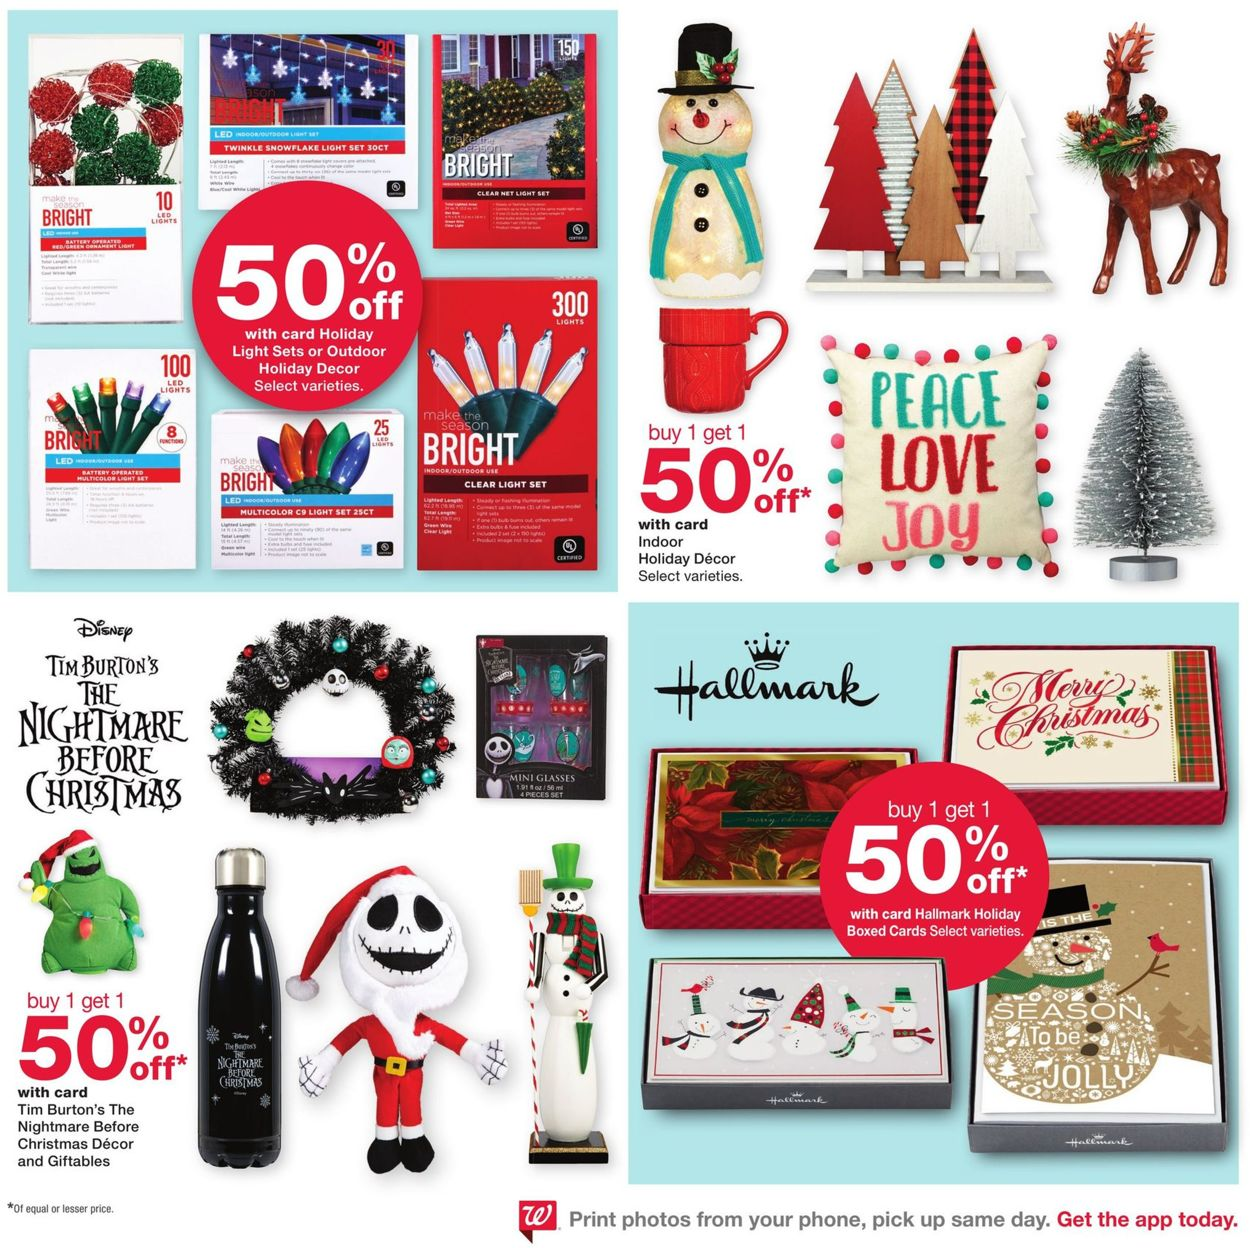 Holidays Ad 2019 Current Weekly Ad 12/08